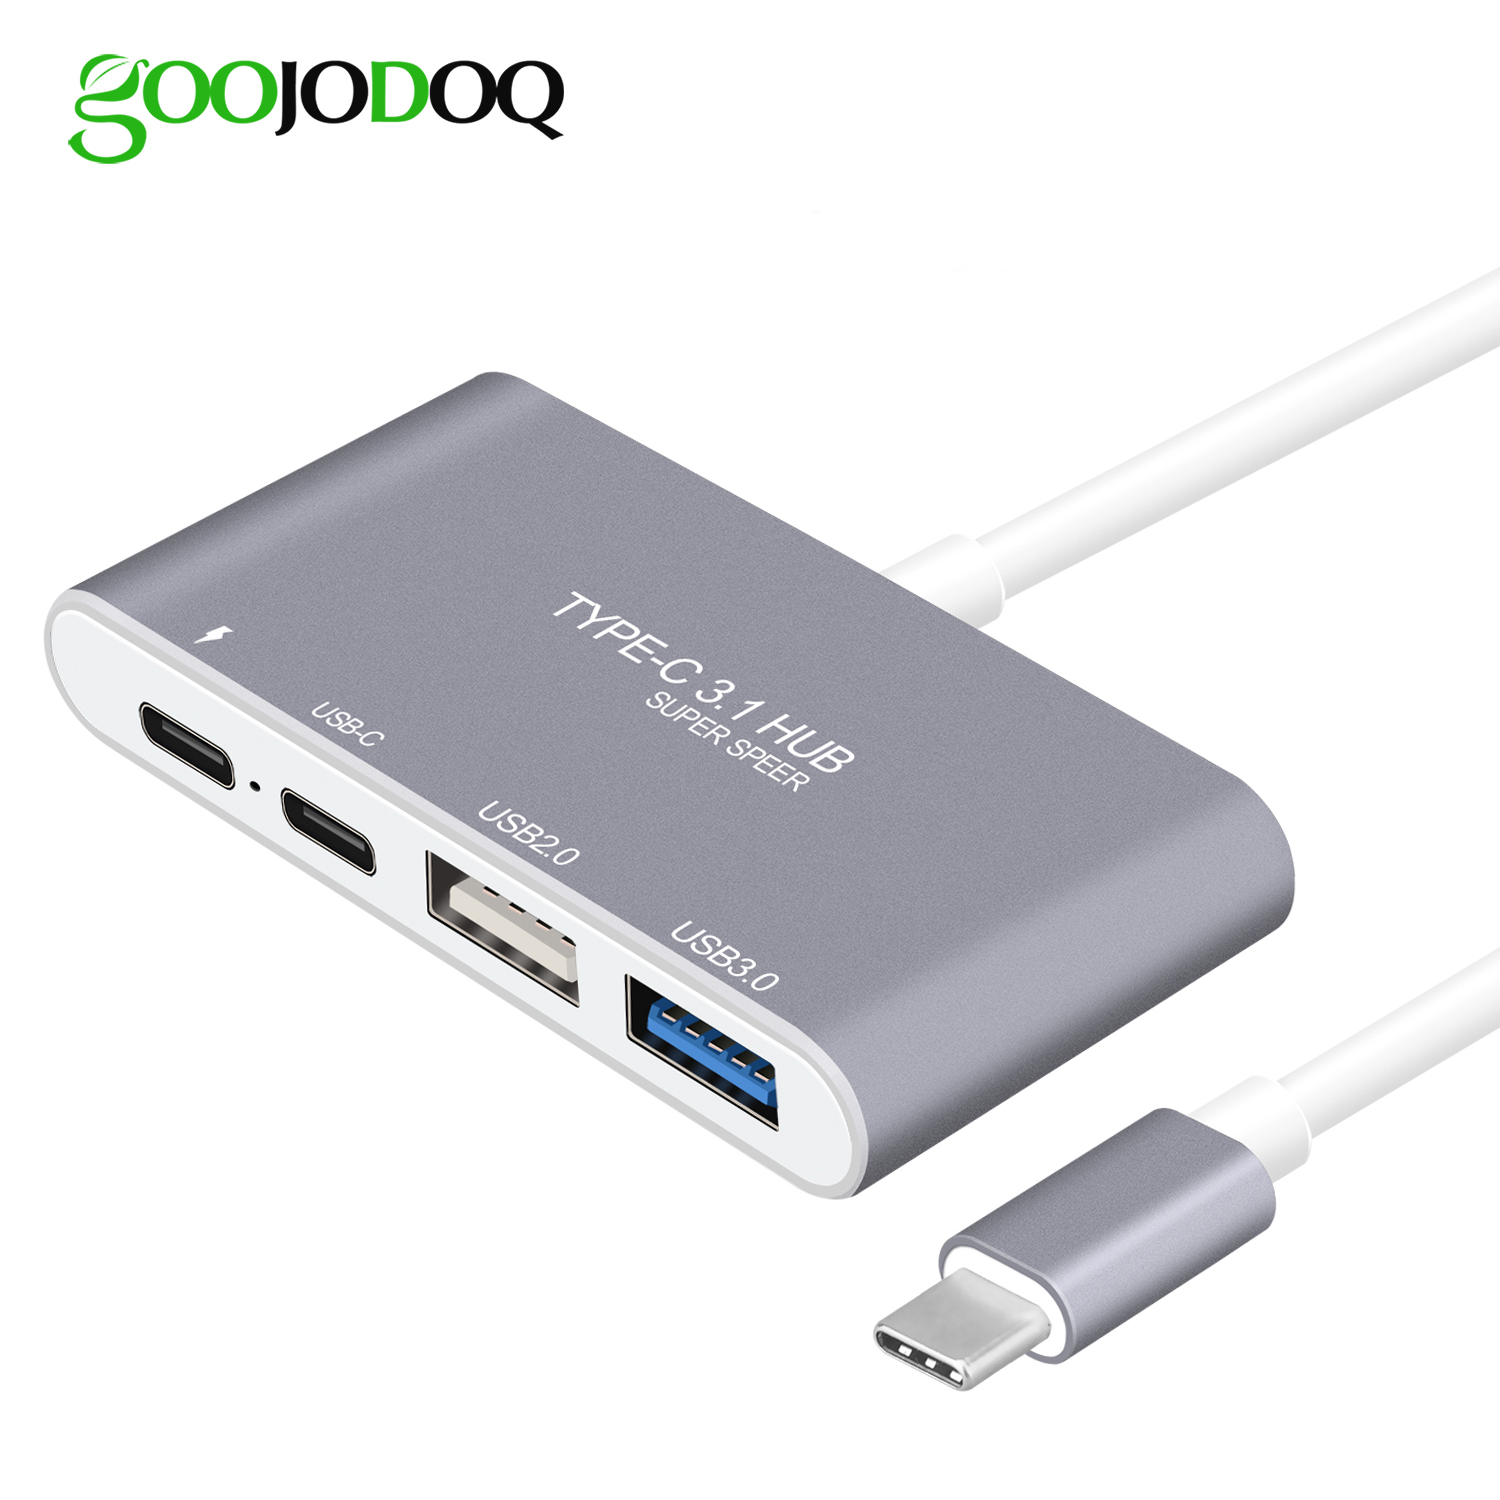 USB 3.1 Type C Hub Type-C to USB C Female USB3.0 USB2.0 Hub with USB-C Charger PD for MacBook Pro and more Devices